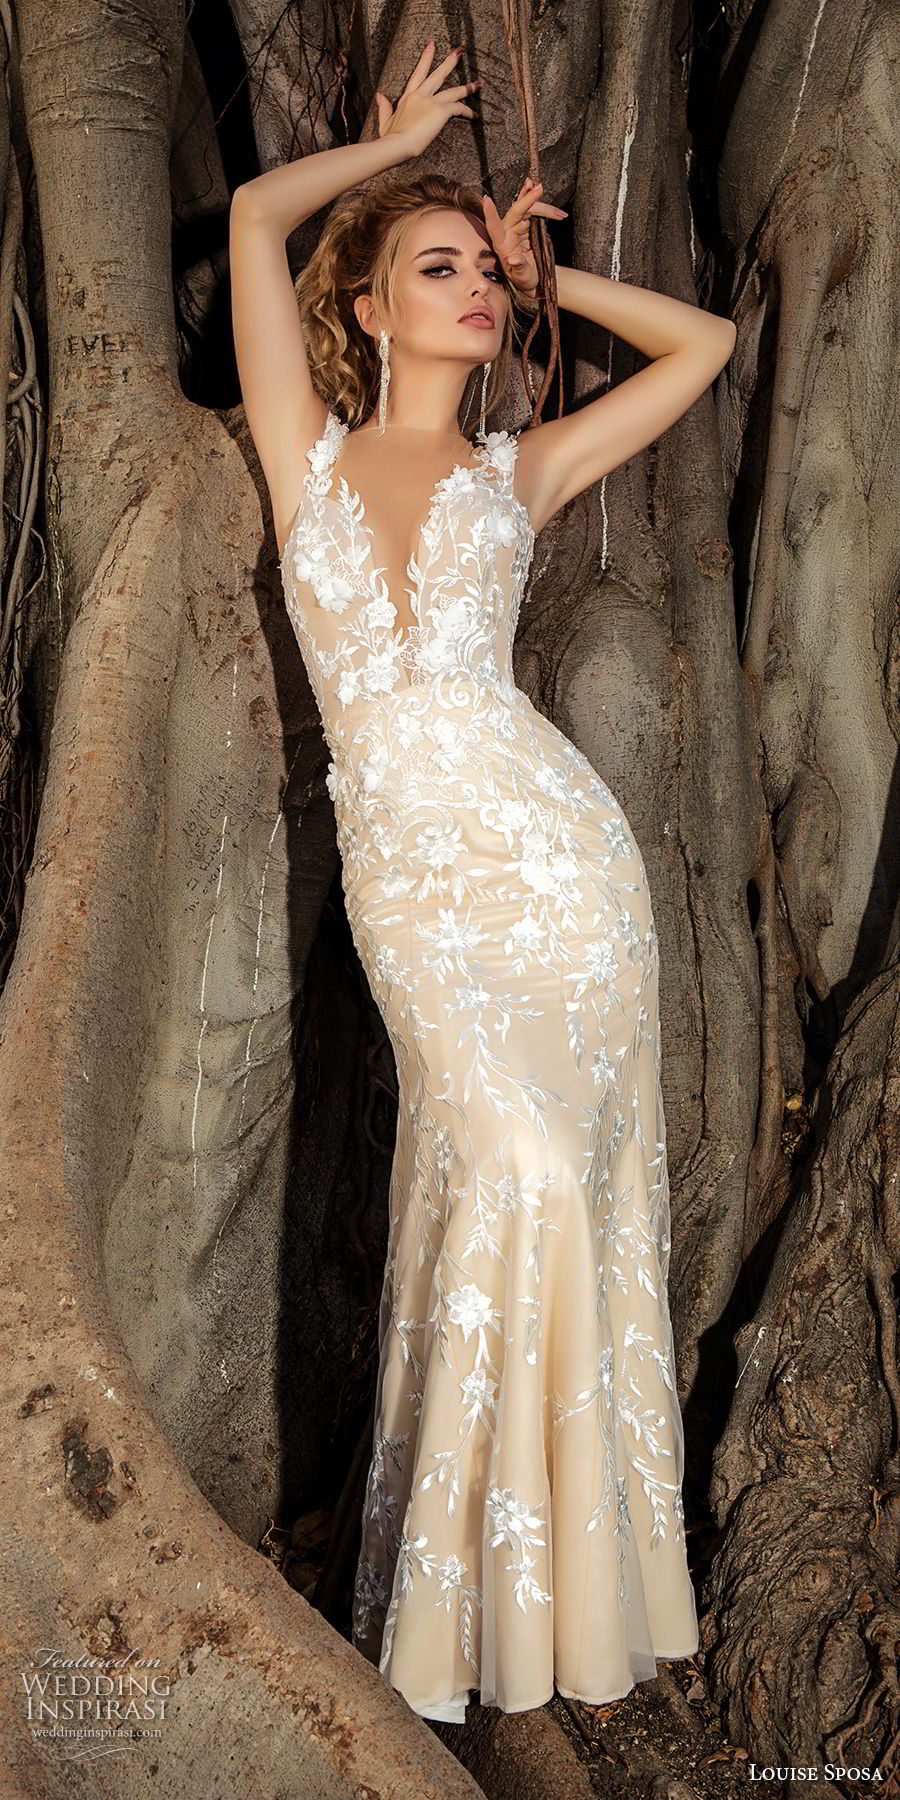 louise sposa 2018 bridal sleeveless with strap deep plunging sweetheart neckline full embellishment elegant fit and flare sheath wedding dress sheer button back sweep train (6) mv